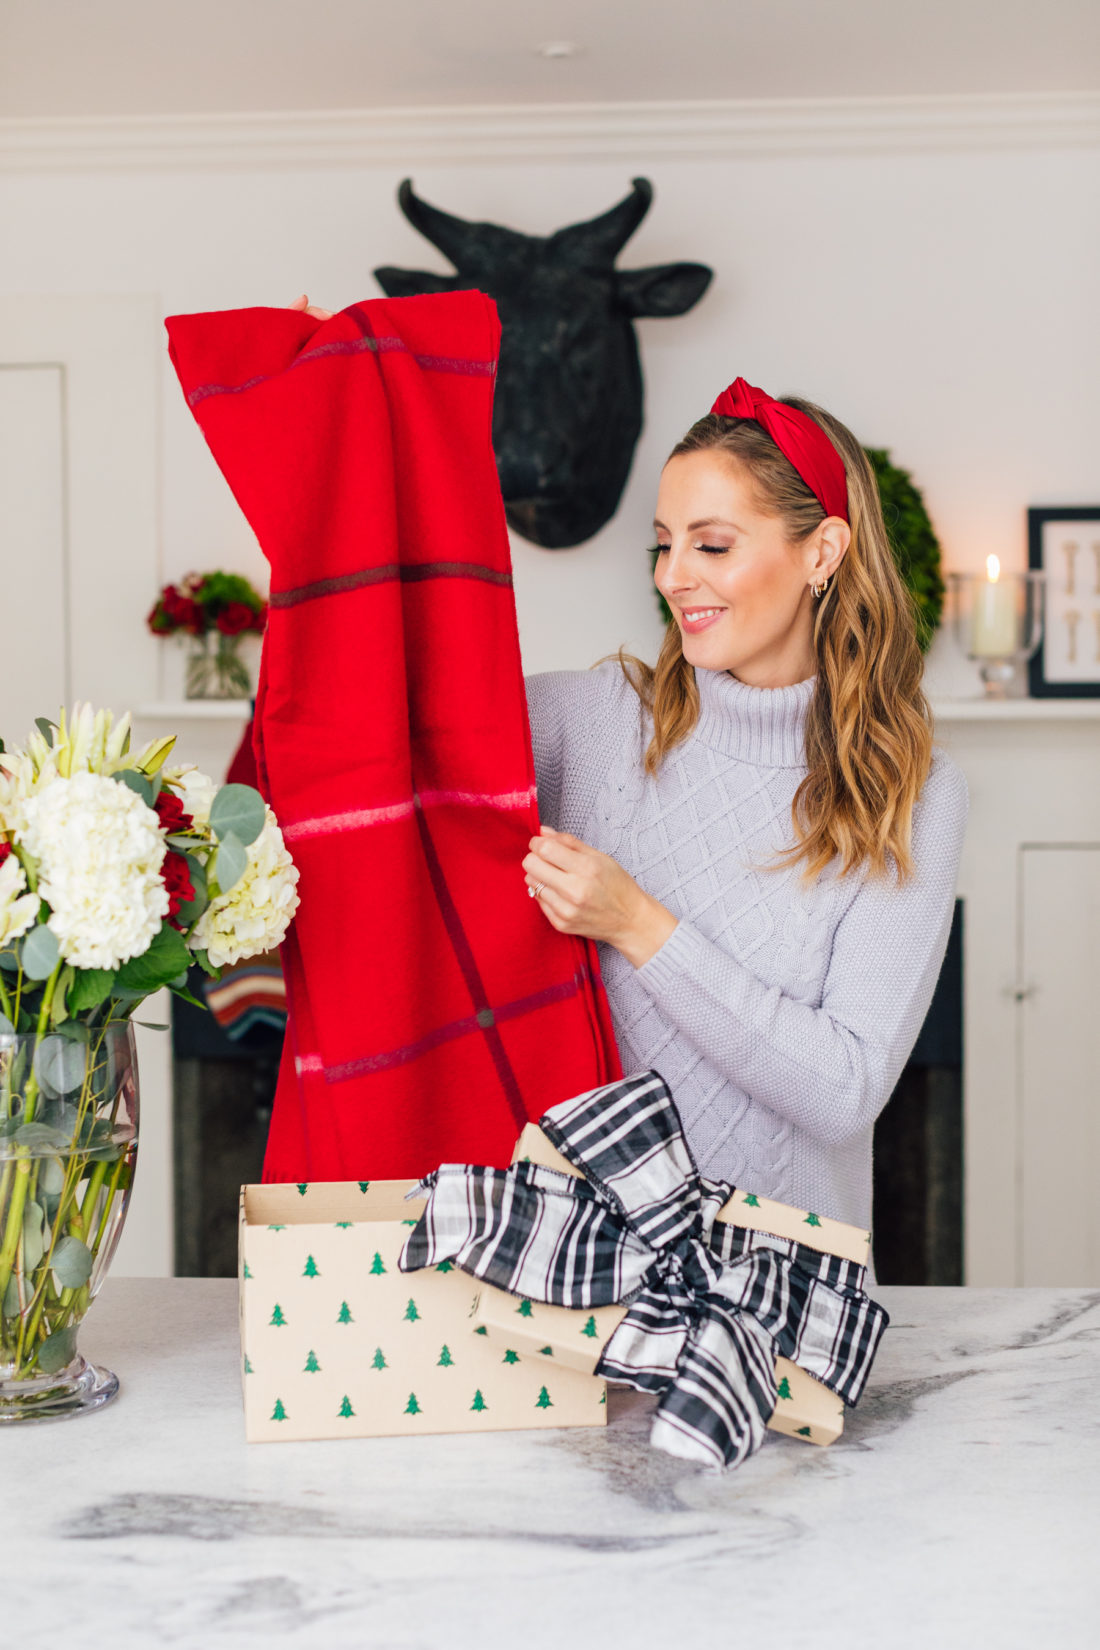 Eva Amurri Martino shares her favorite gifts from Garnet Hill, including this beautiful blanket